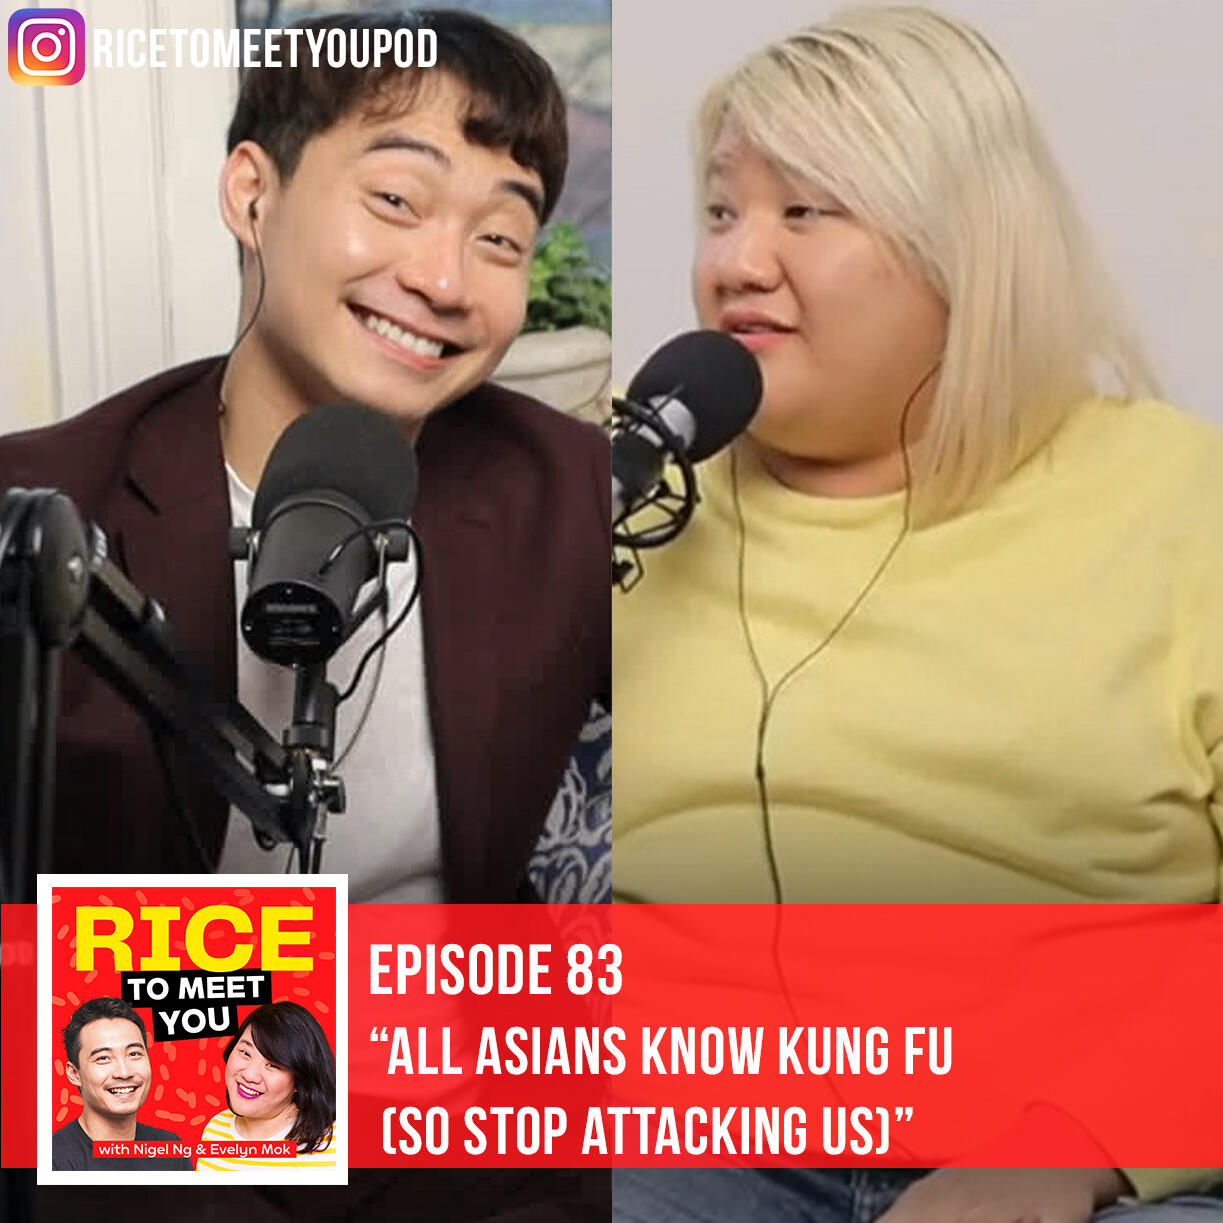 83: ALL ASIANS KNOW KUNG FU (So Don't Attack Us)